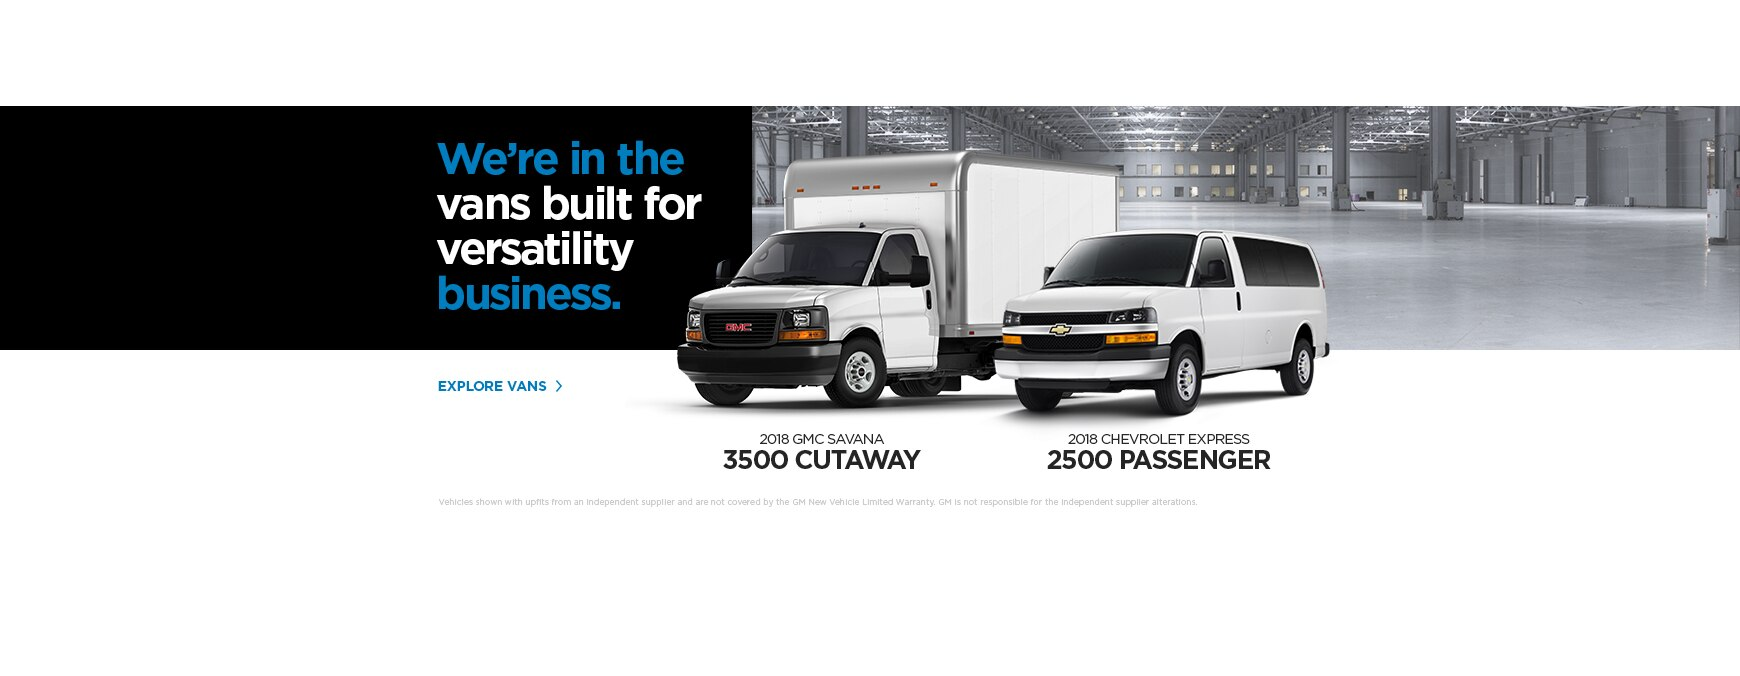 Business commercial vehicles gm fleet canada reheart Images